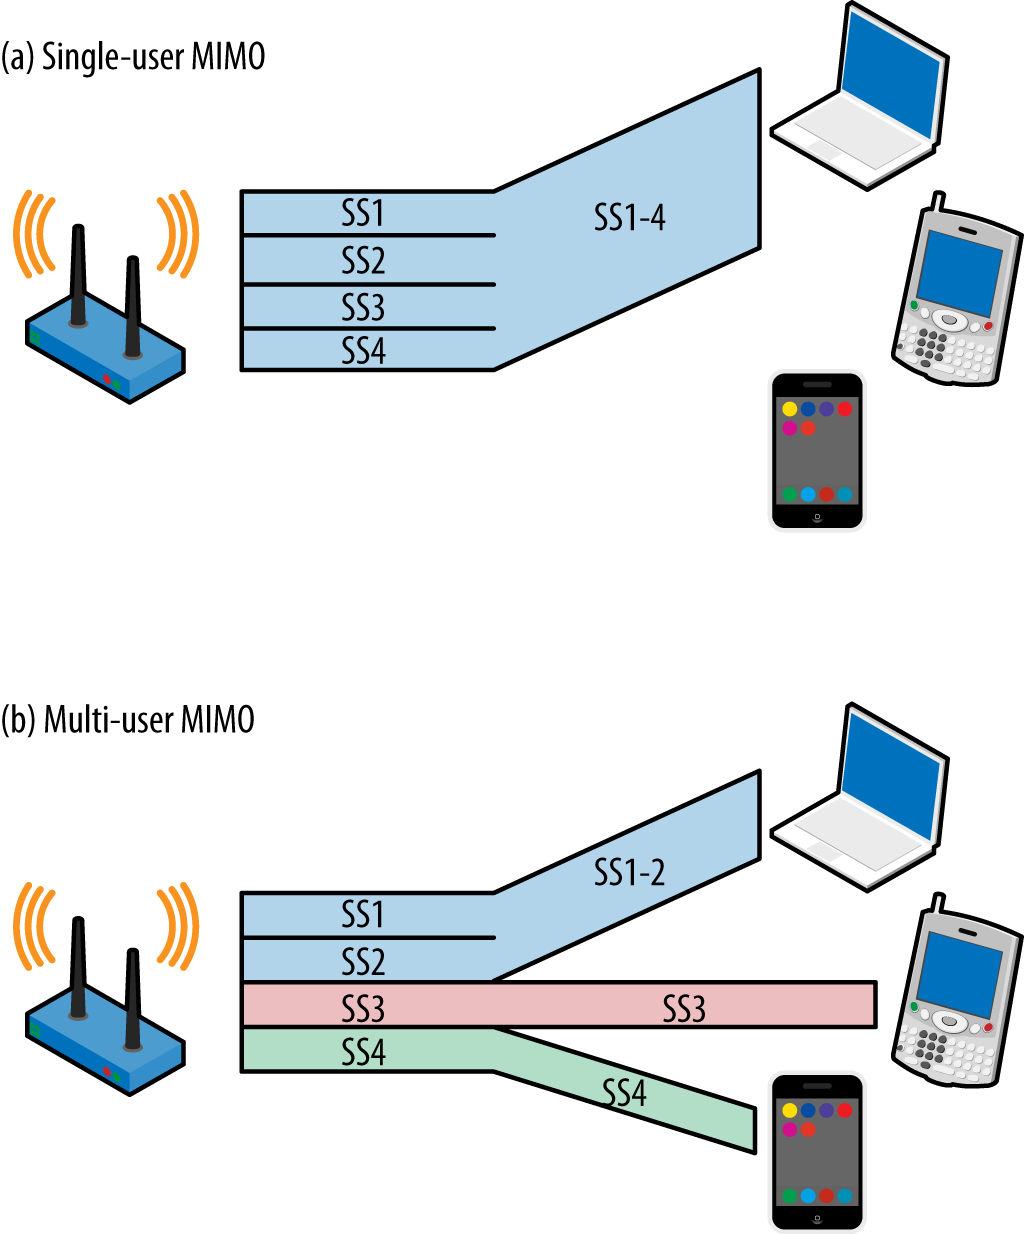 Single- and multi-user MIMO comparison